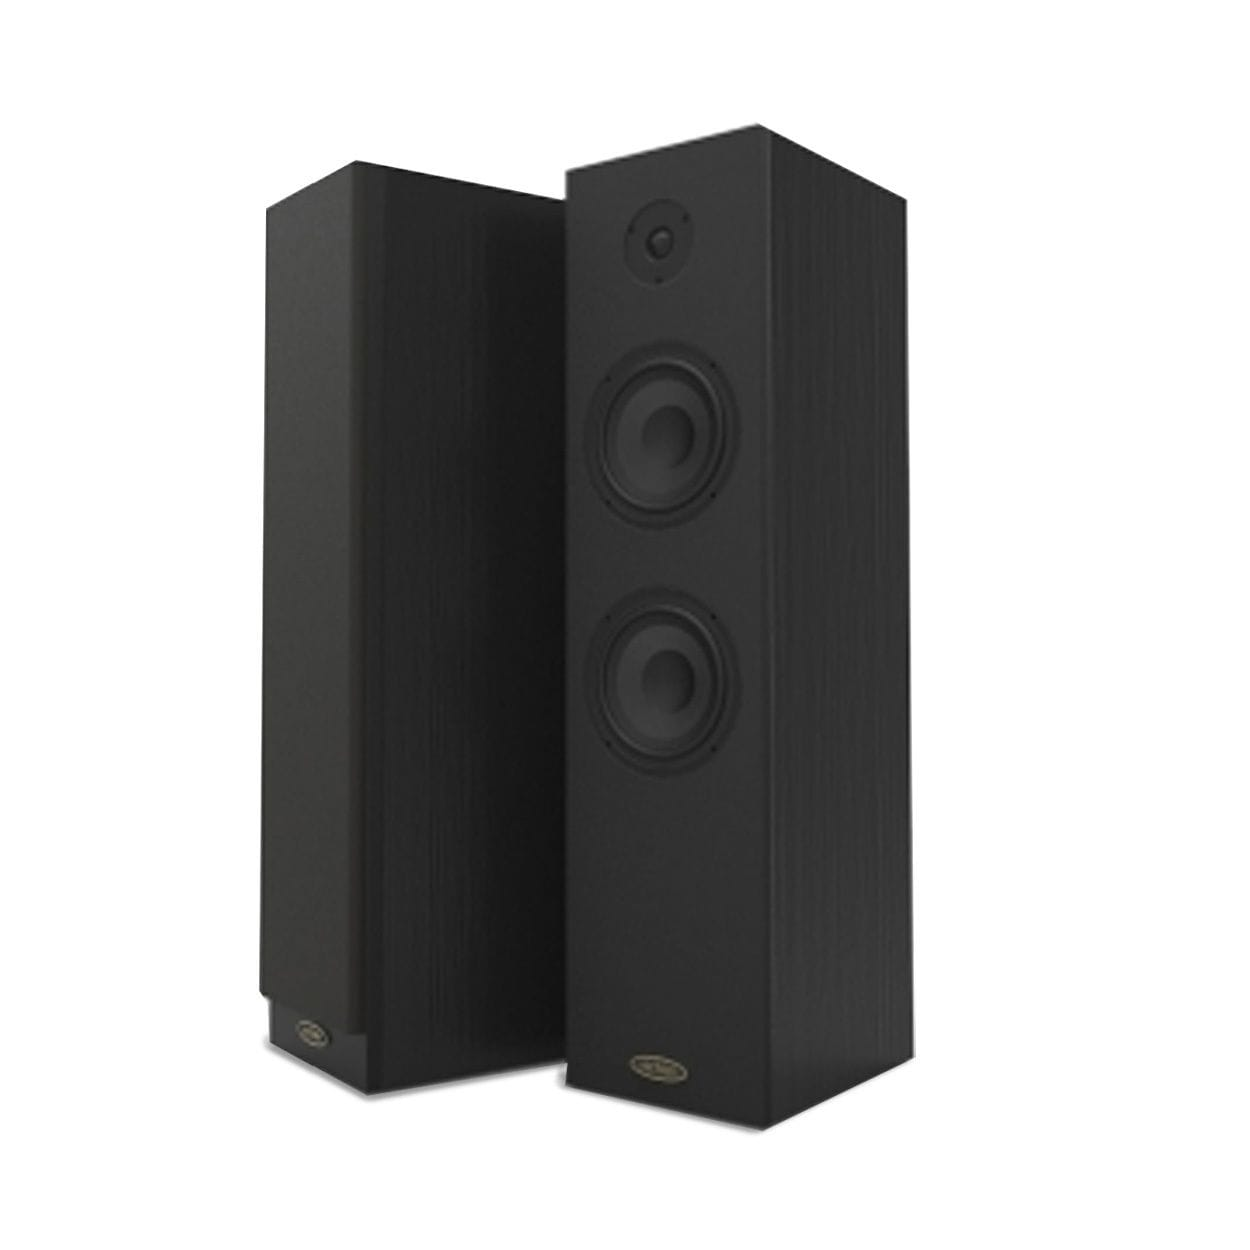 Richter Jaguar II Floorstanding Speakers